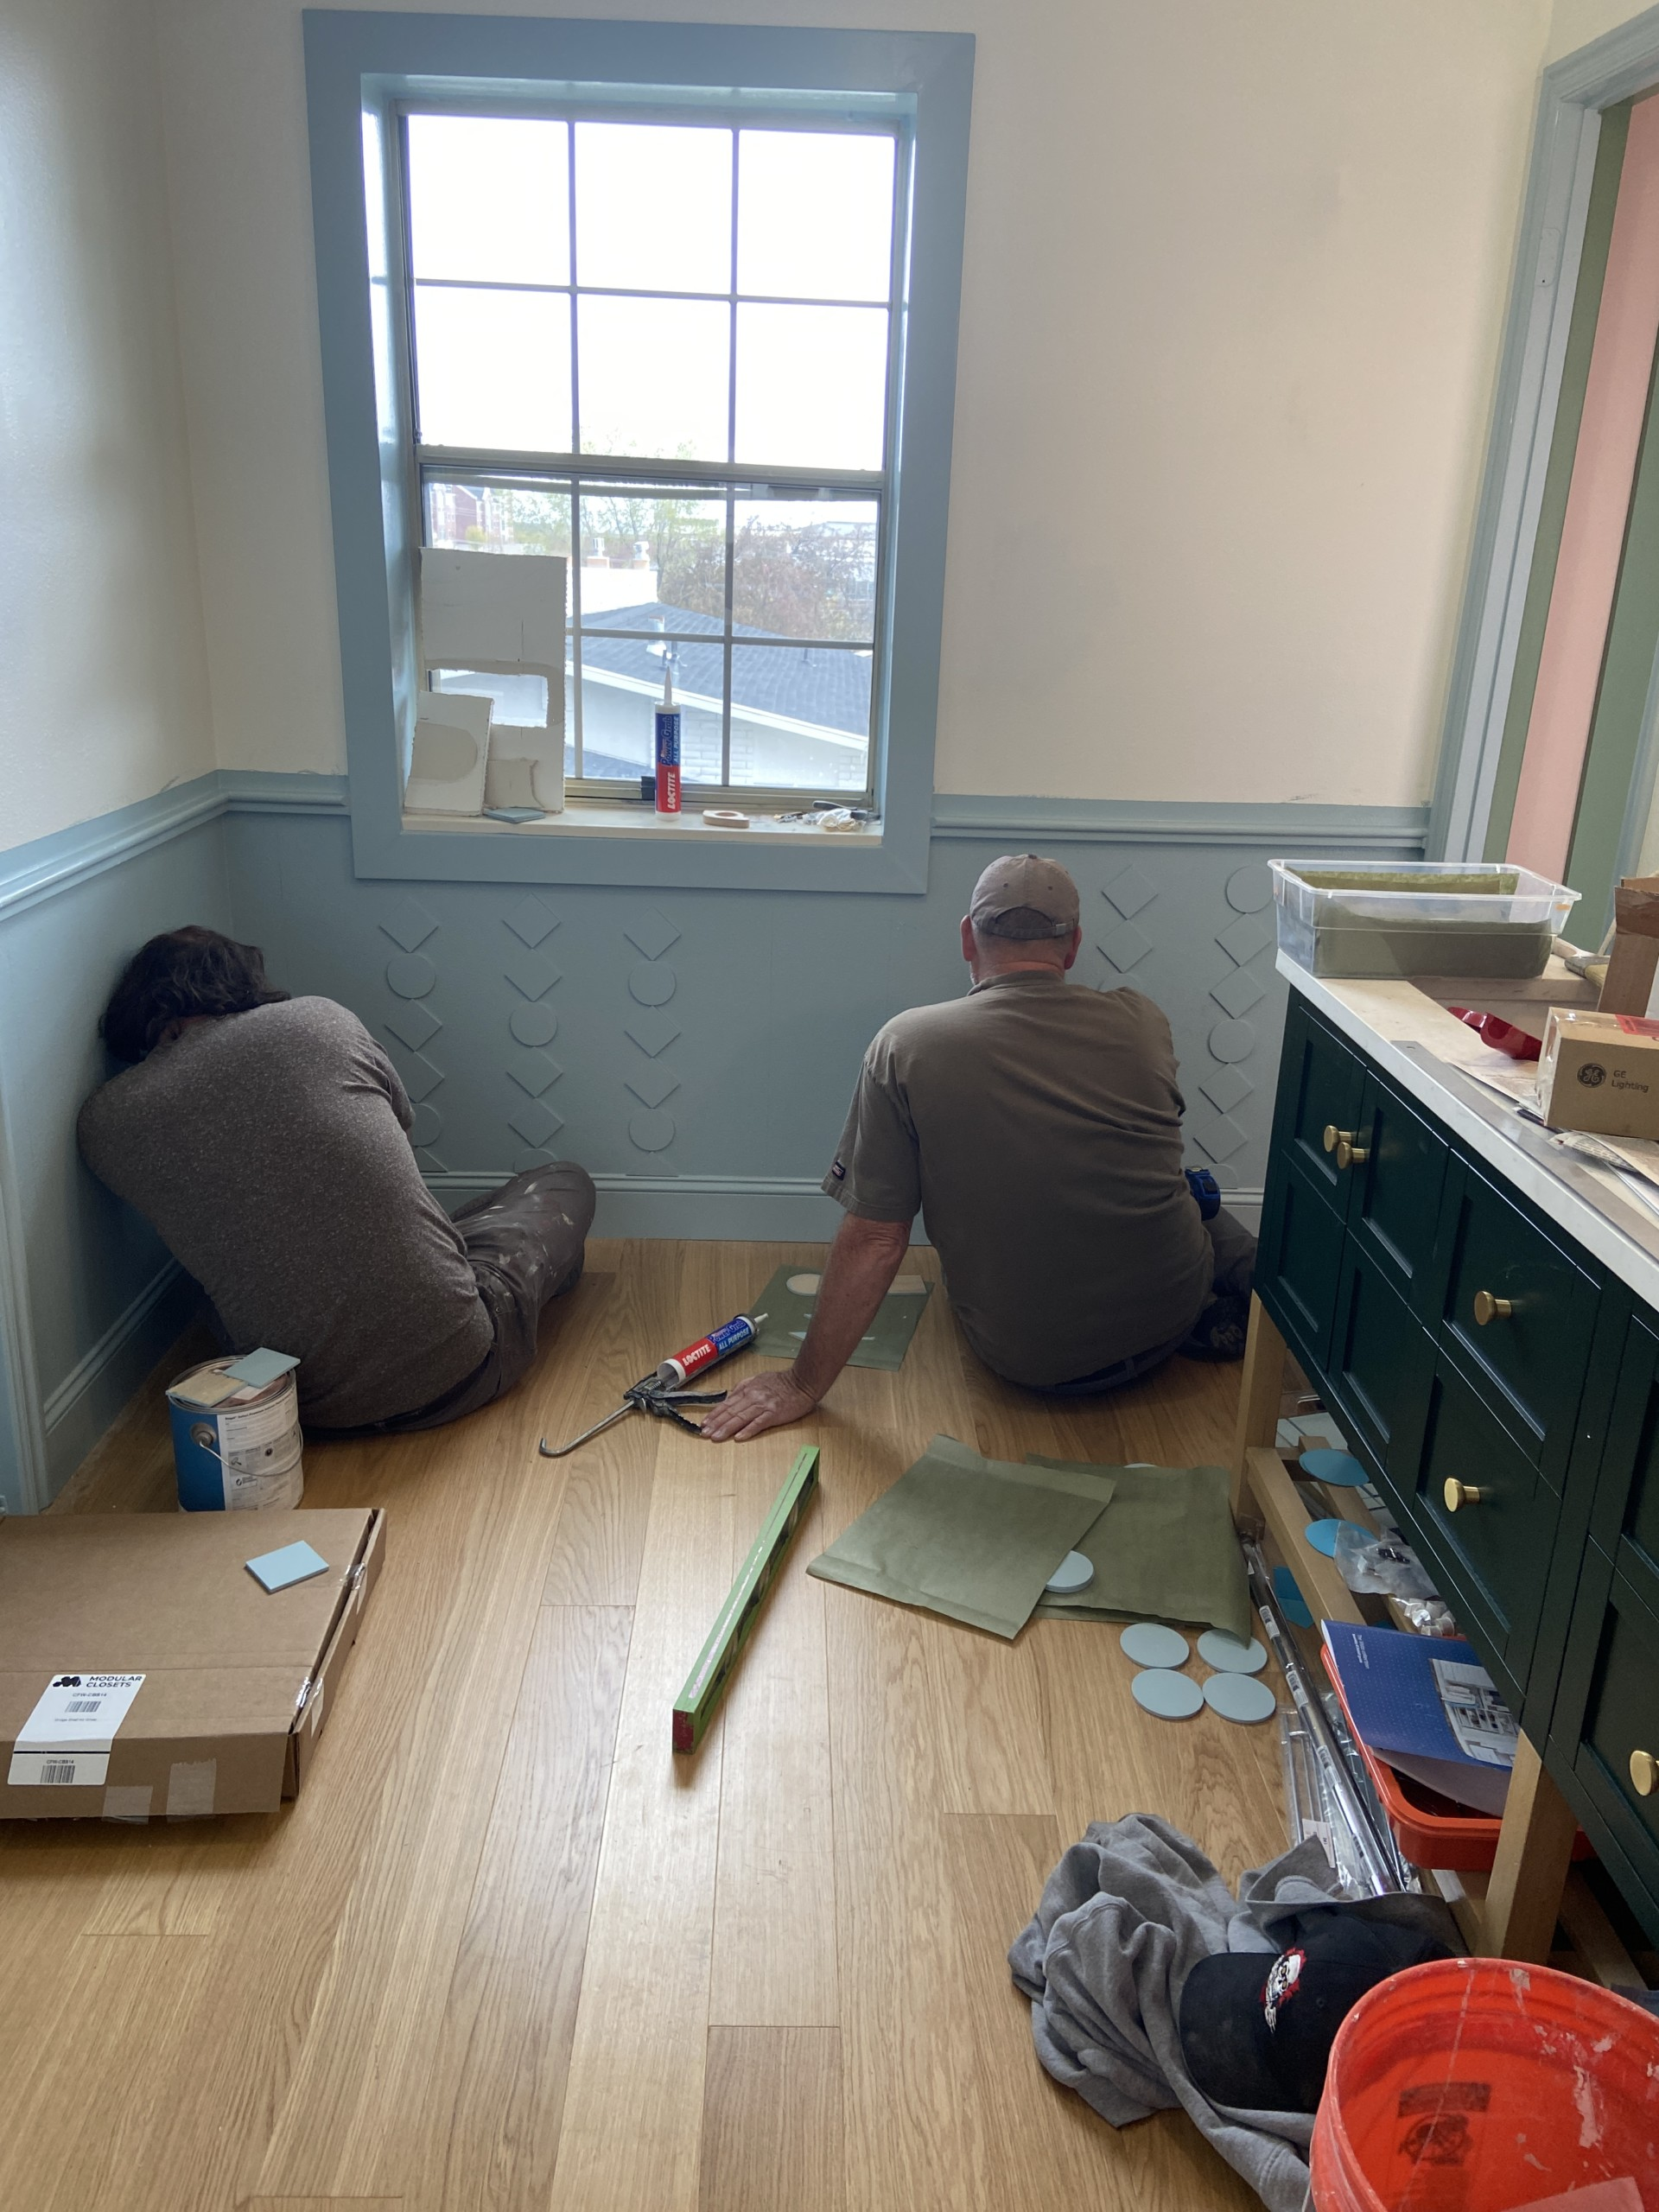 Two workmen glue up wooden cutouts as a custom DIY wainscoting.